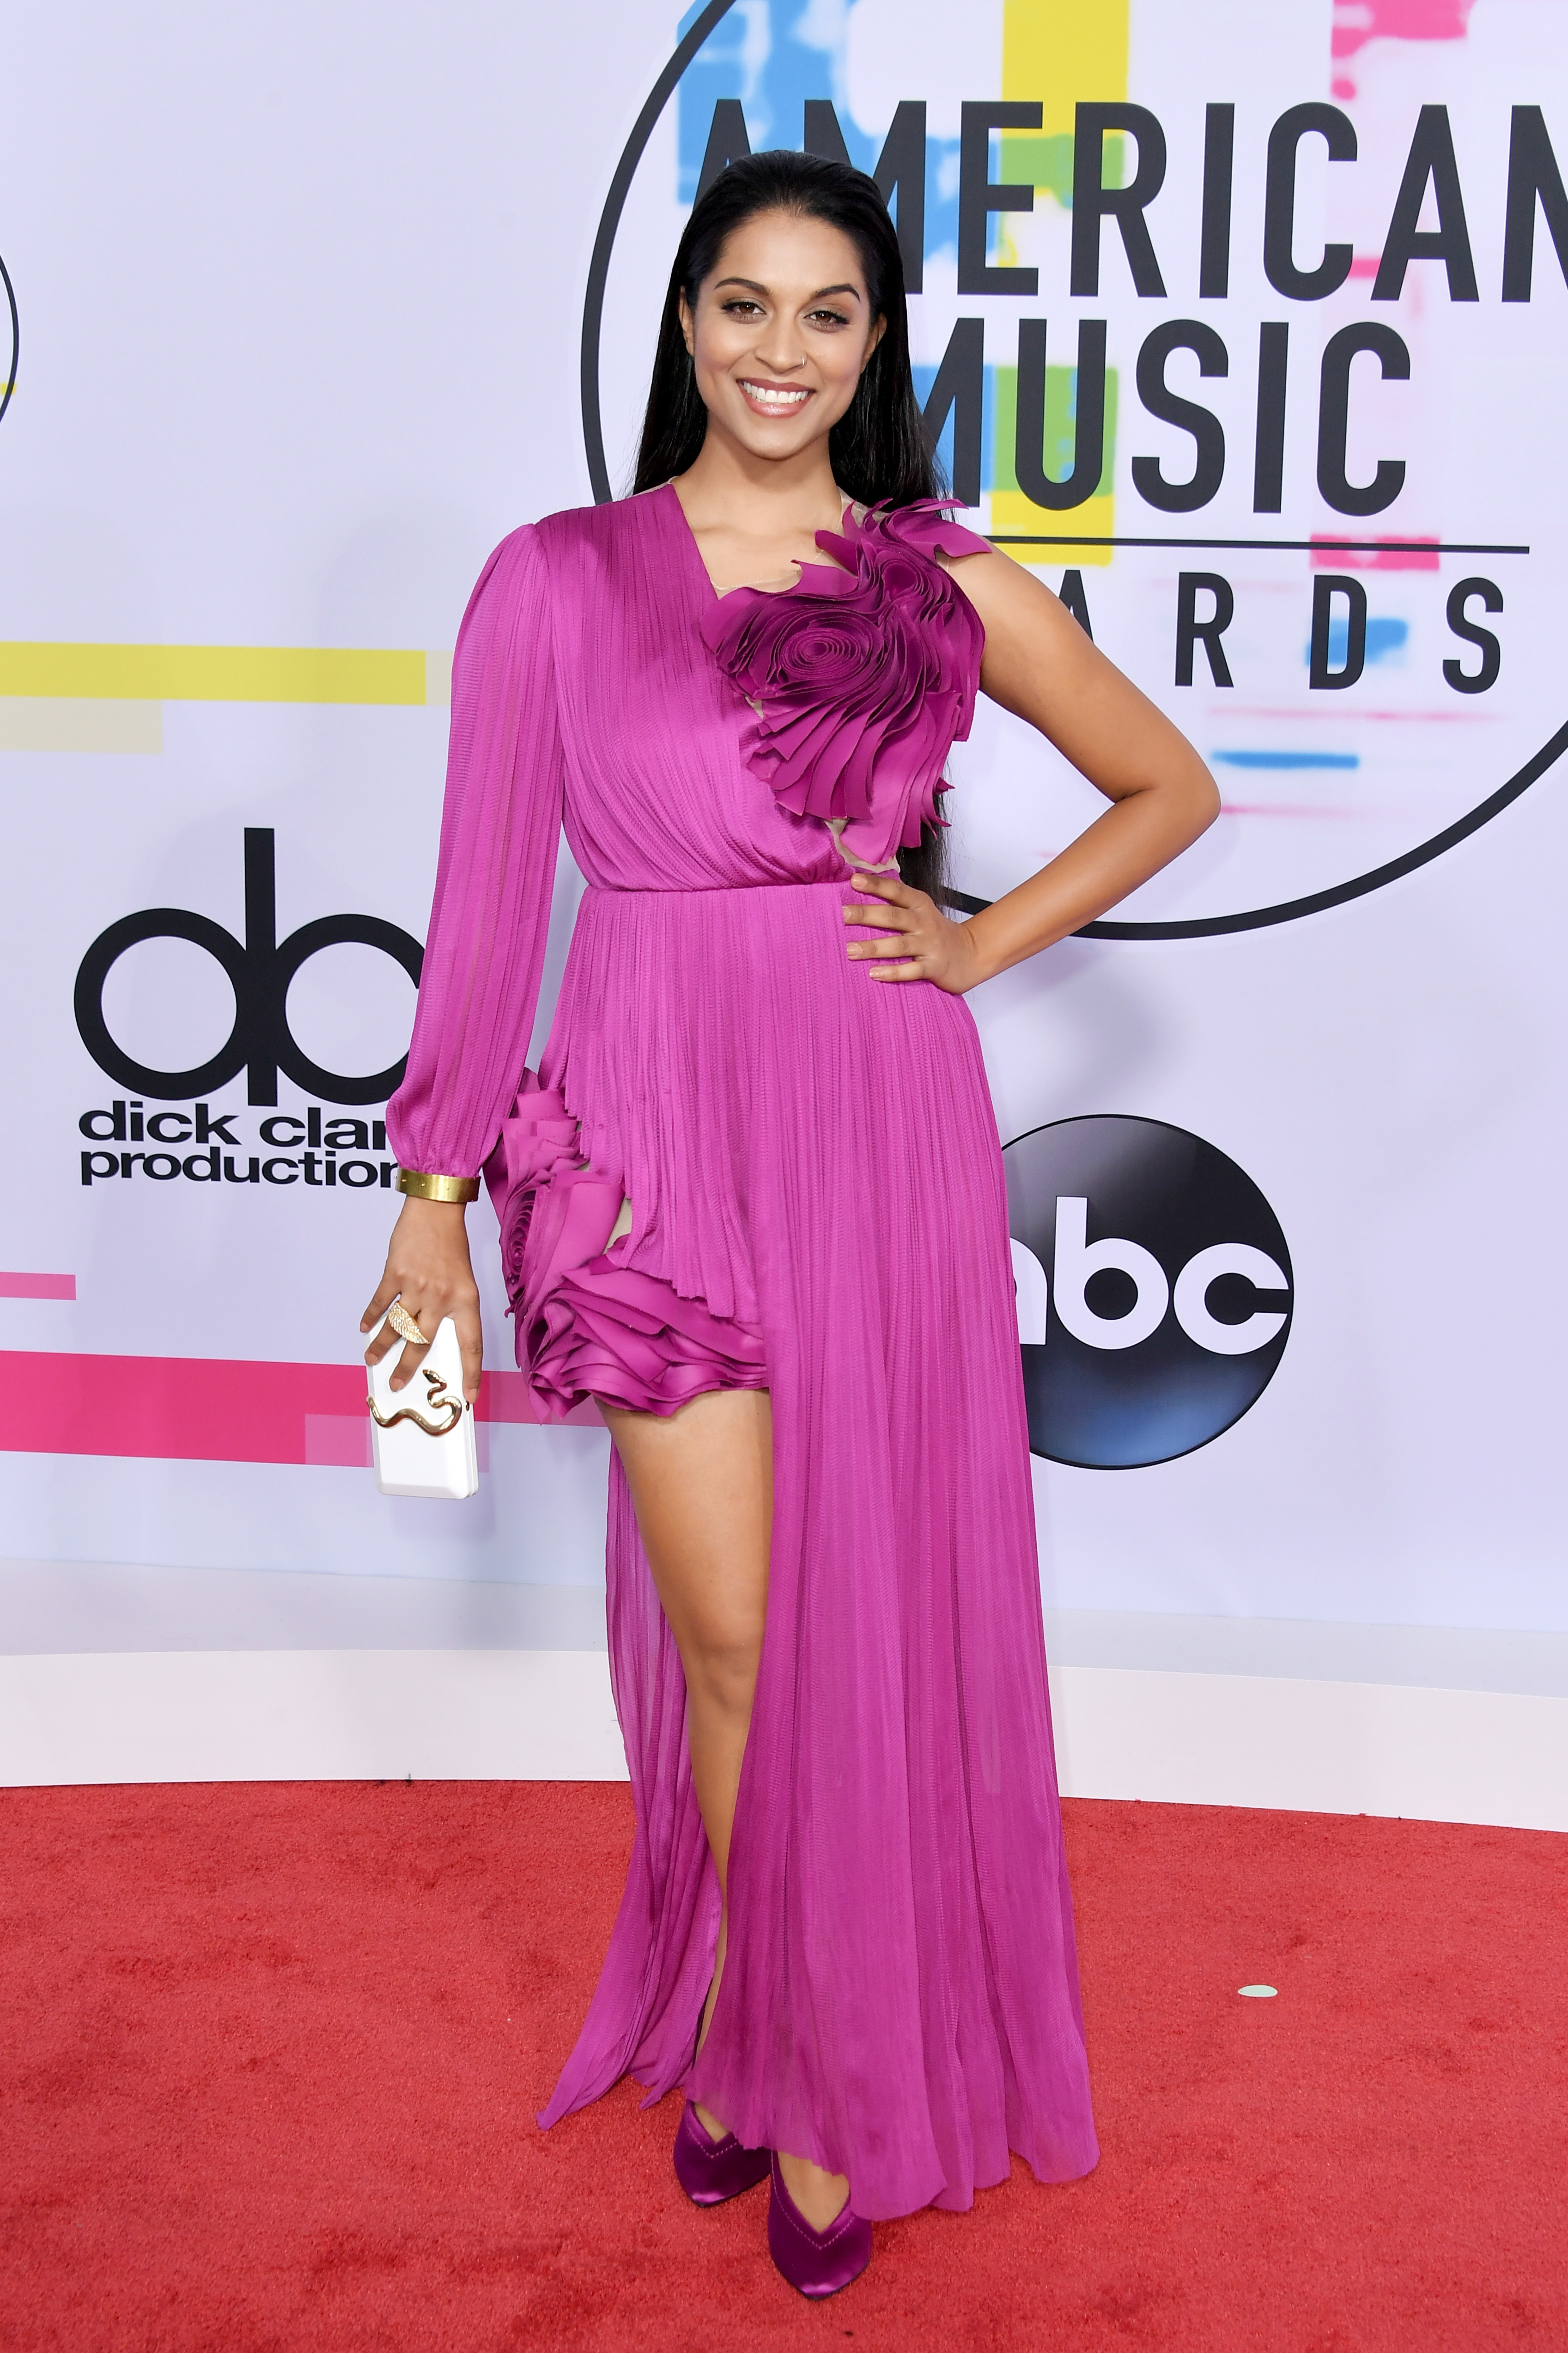 Lilly Singh attends the American Music Awards at the Microsoft Theater in Los Angeles on Nov. 19, 2017.